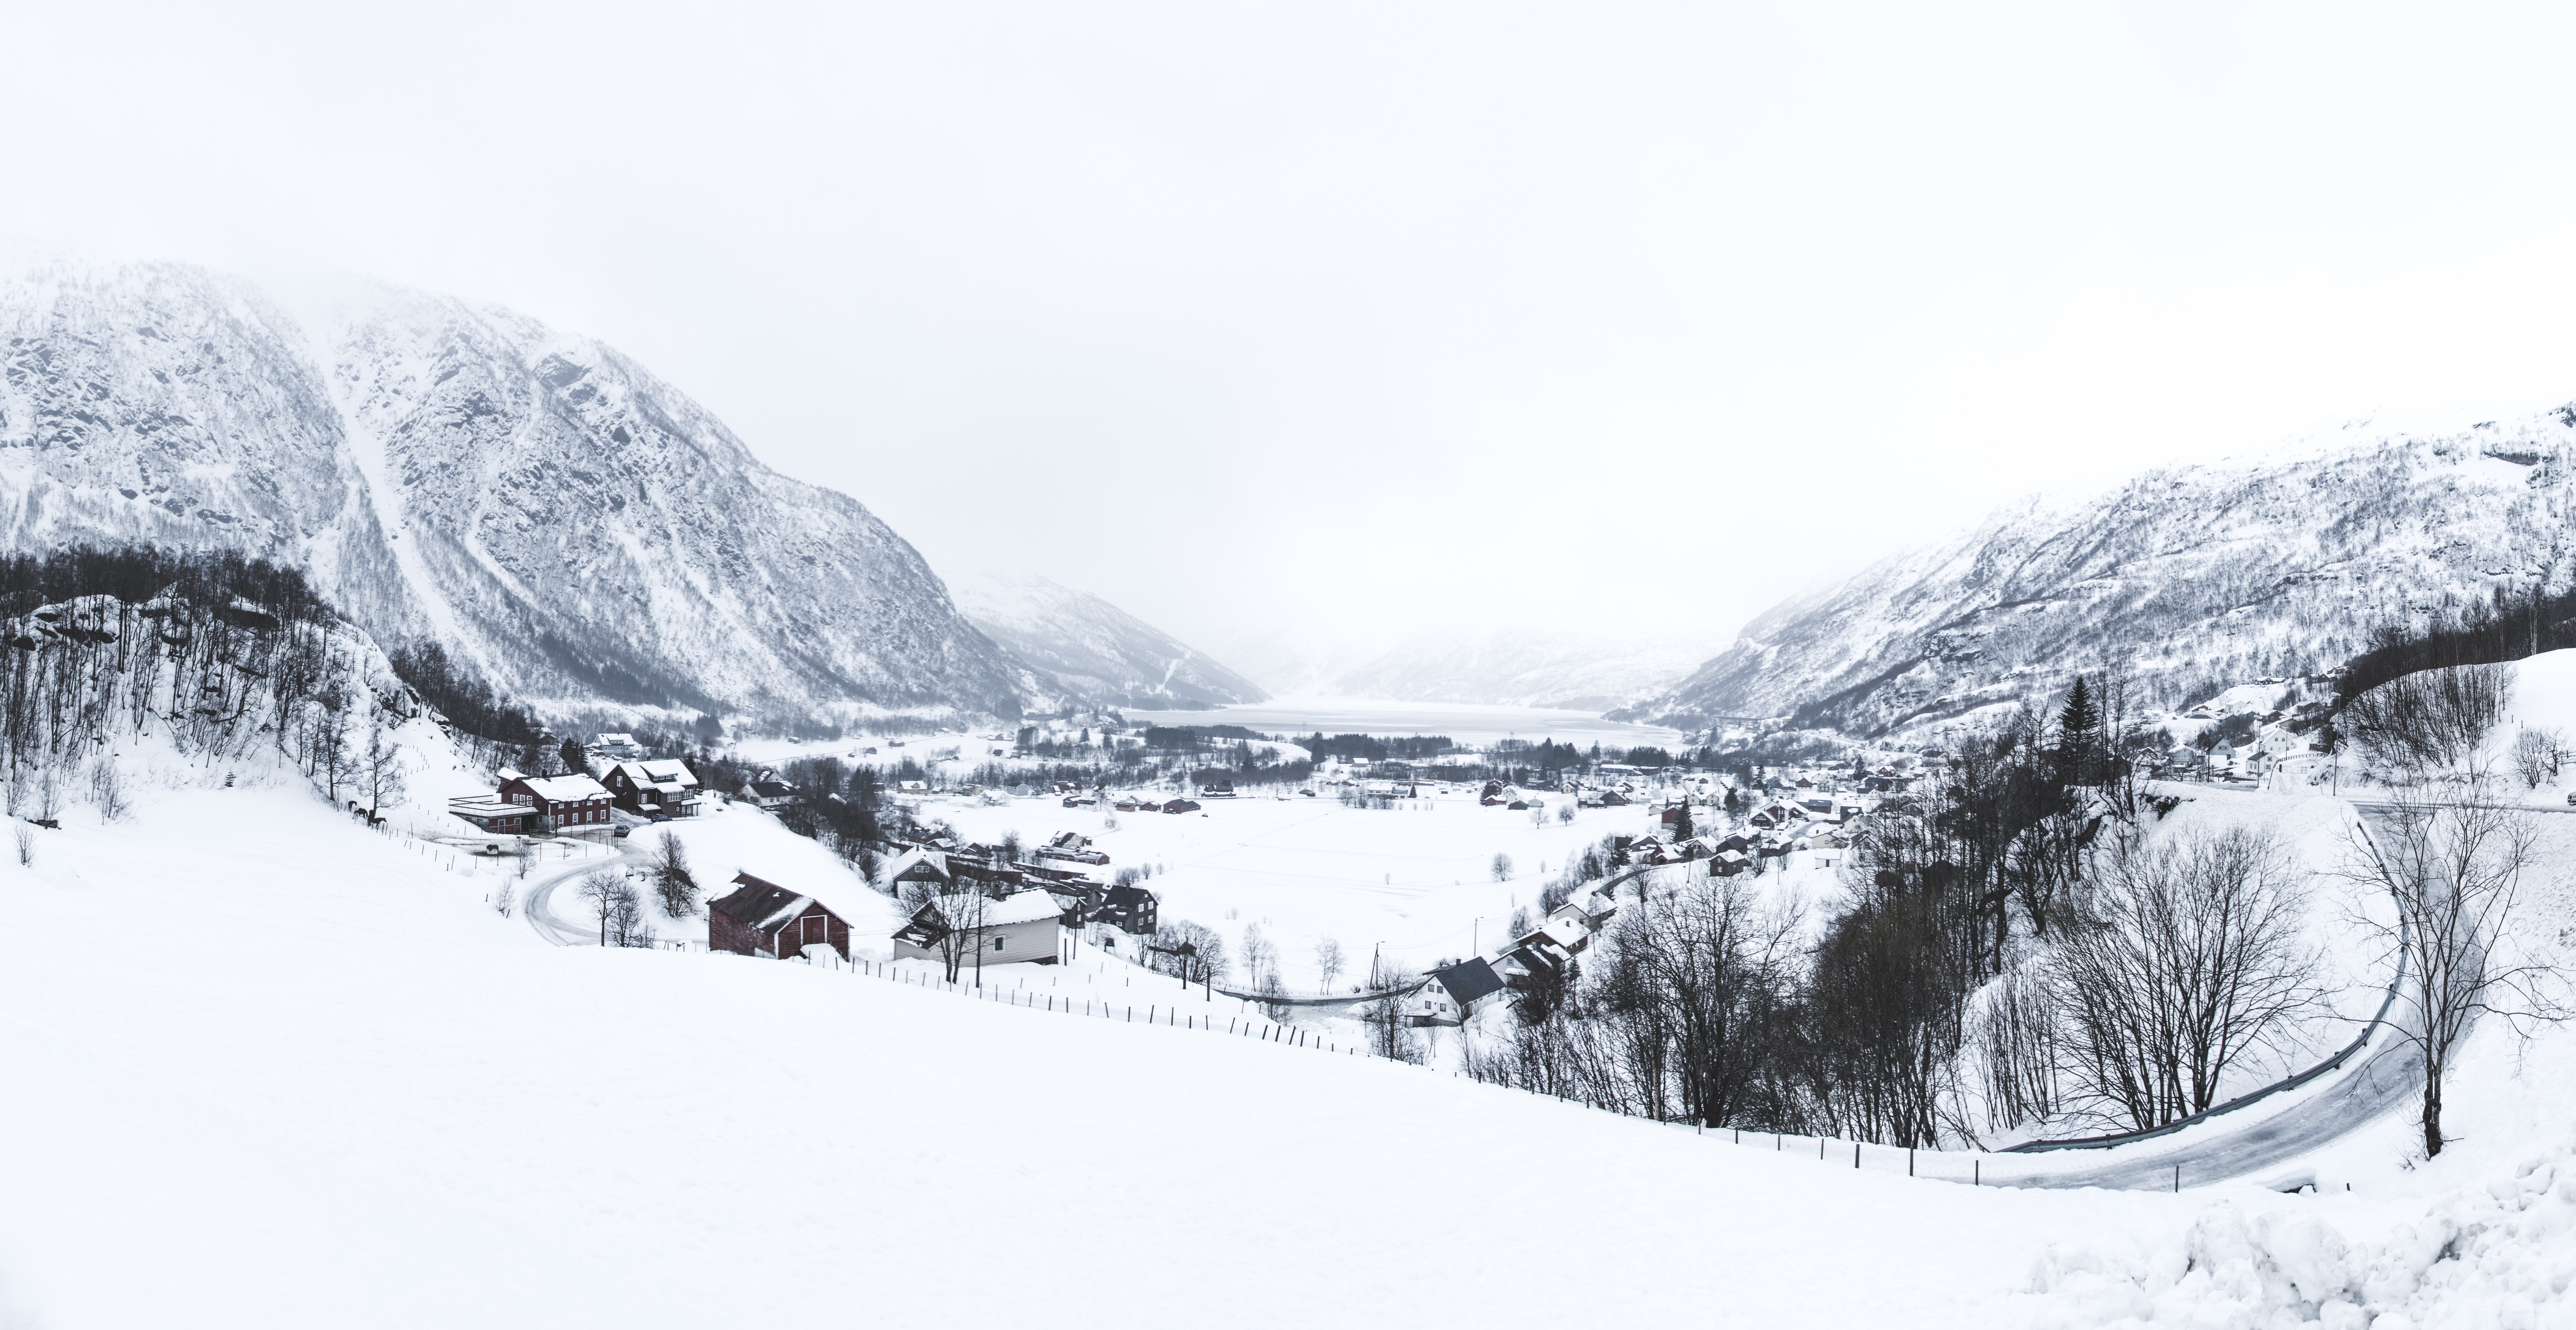 village coated with snow